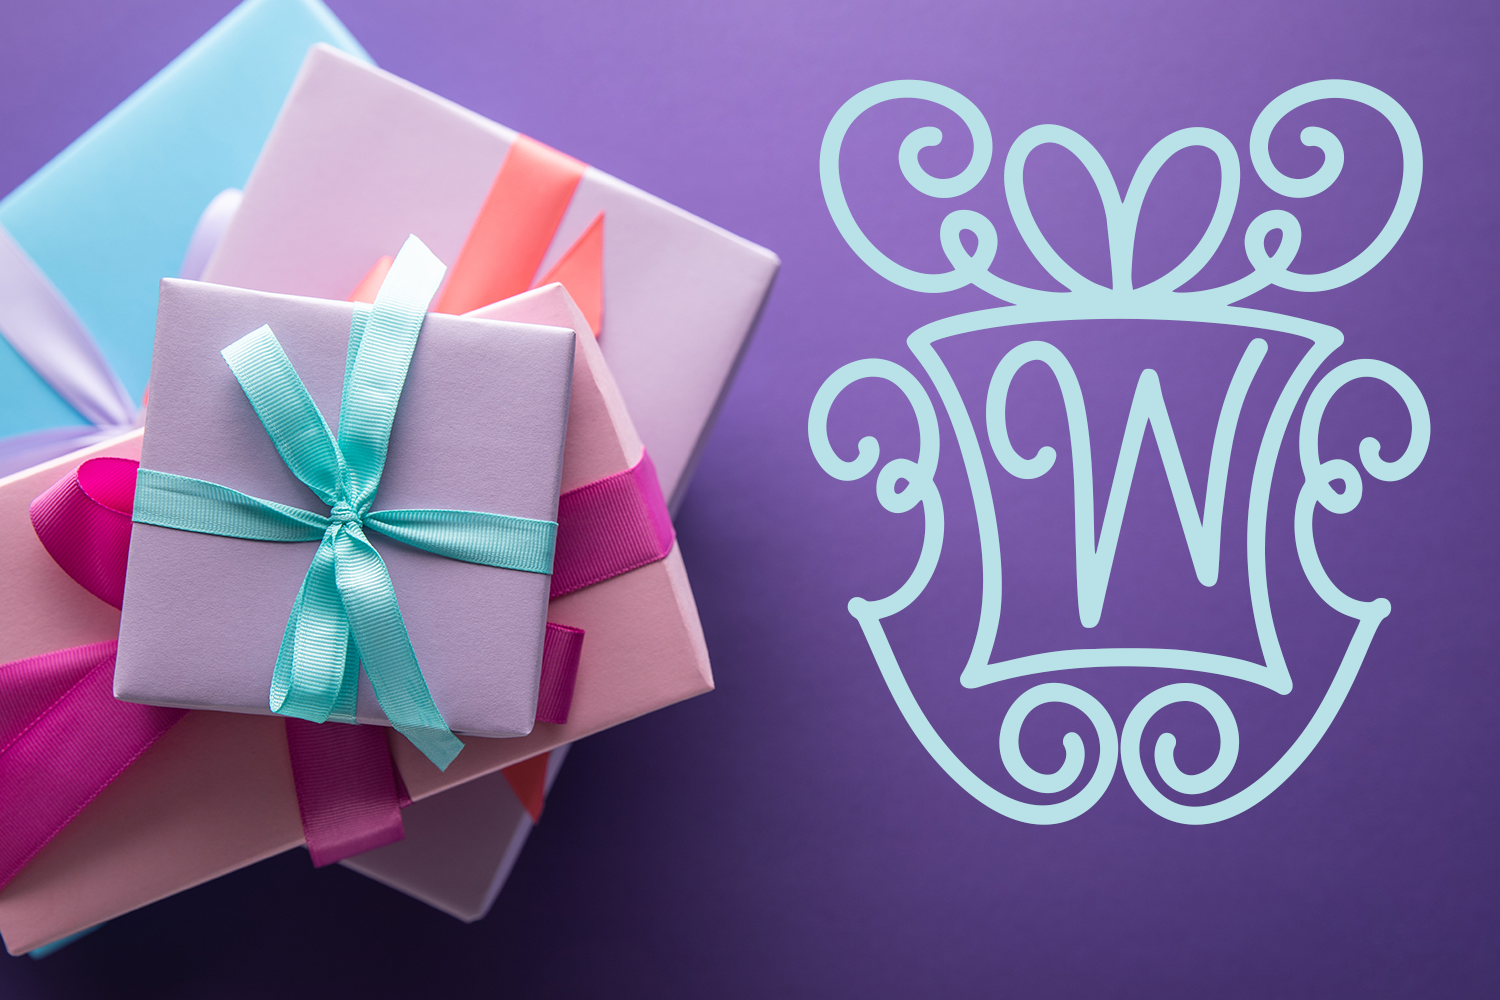 Christmasgram - A Hand-Written Monogram Font With SVG example image 4